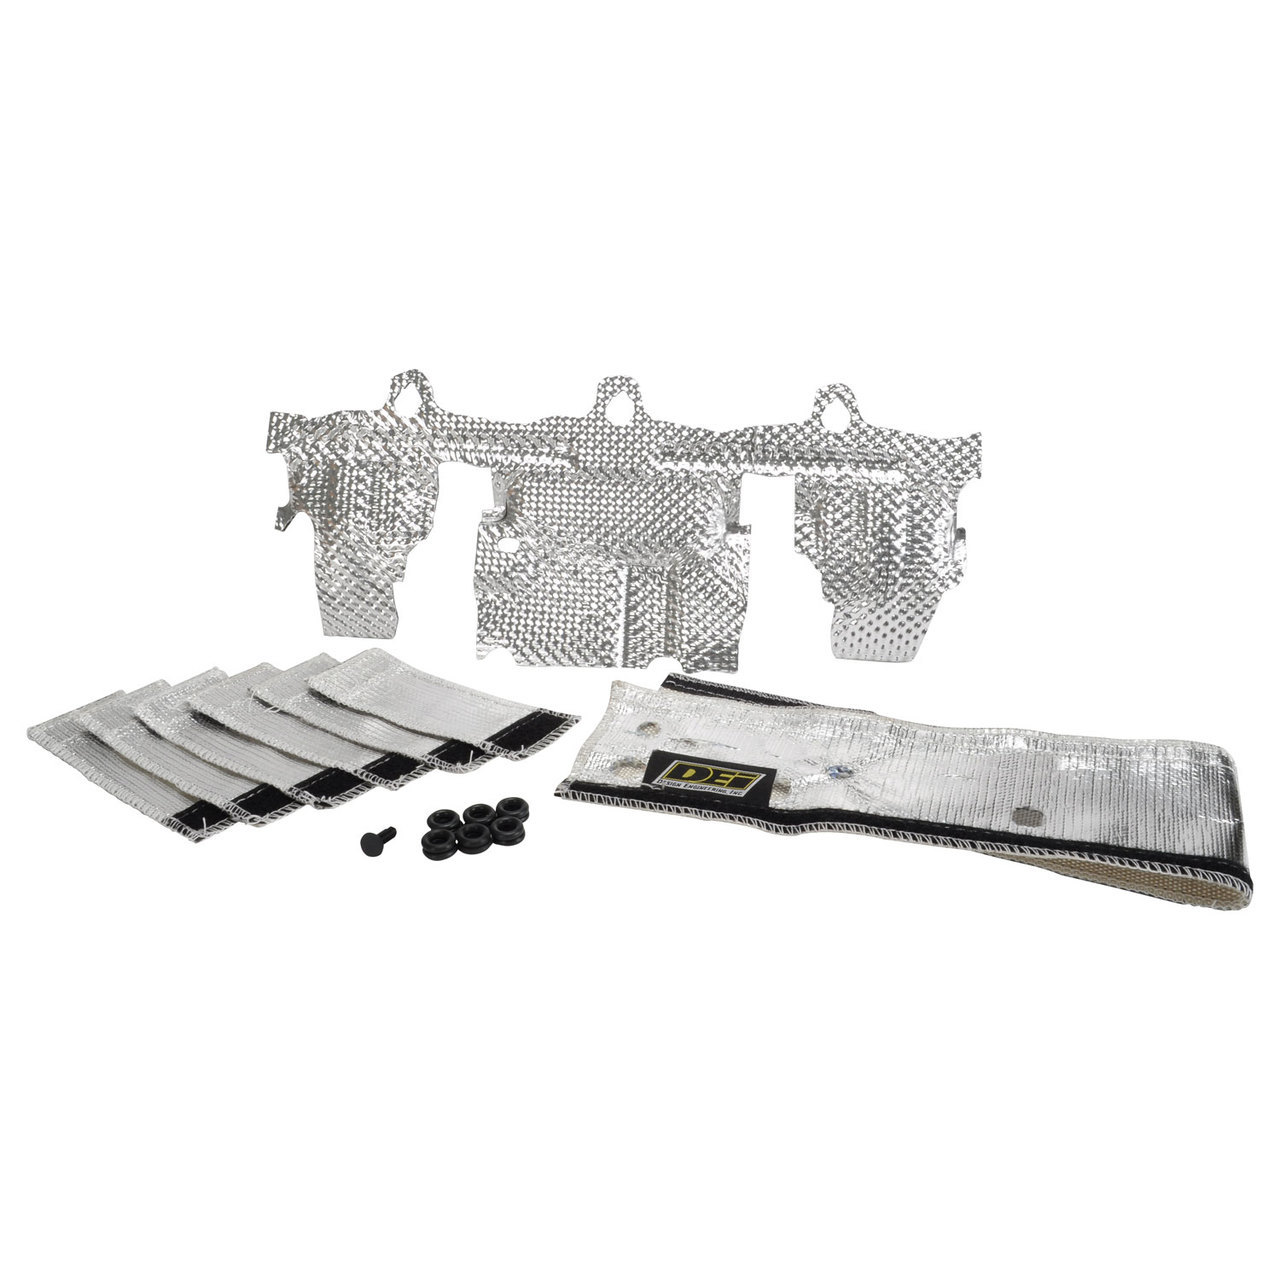 Jeep '97-'04 Fuel Rail & Injector Cover Kit